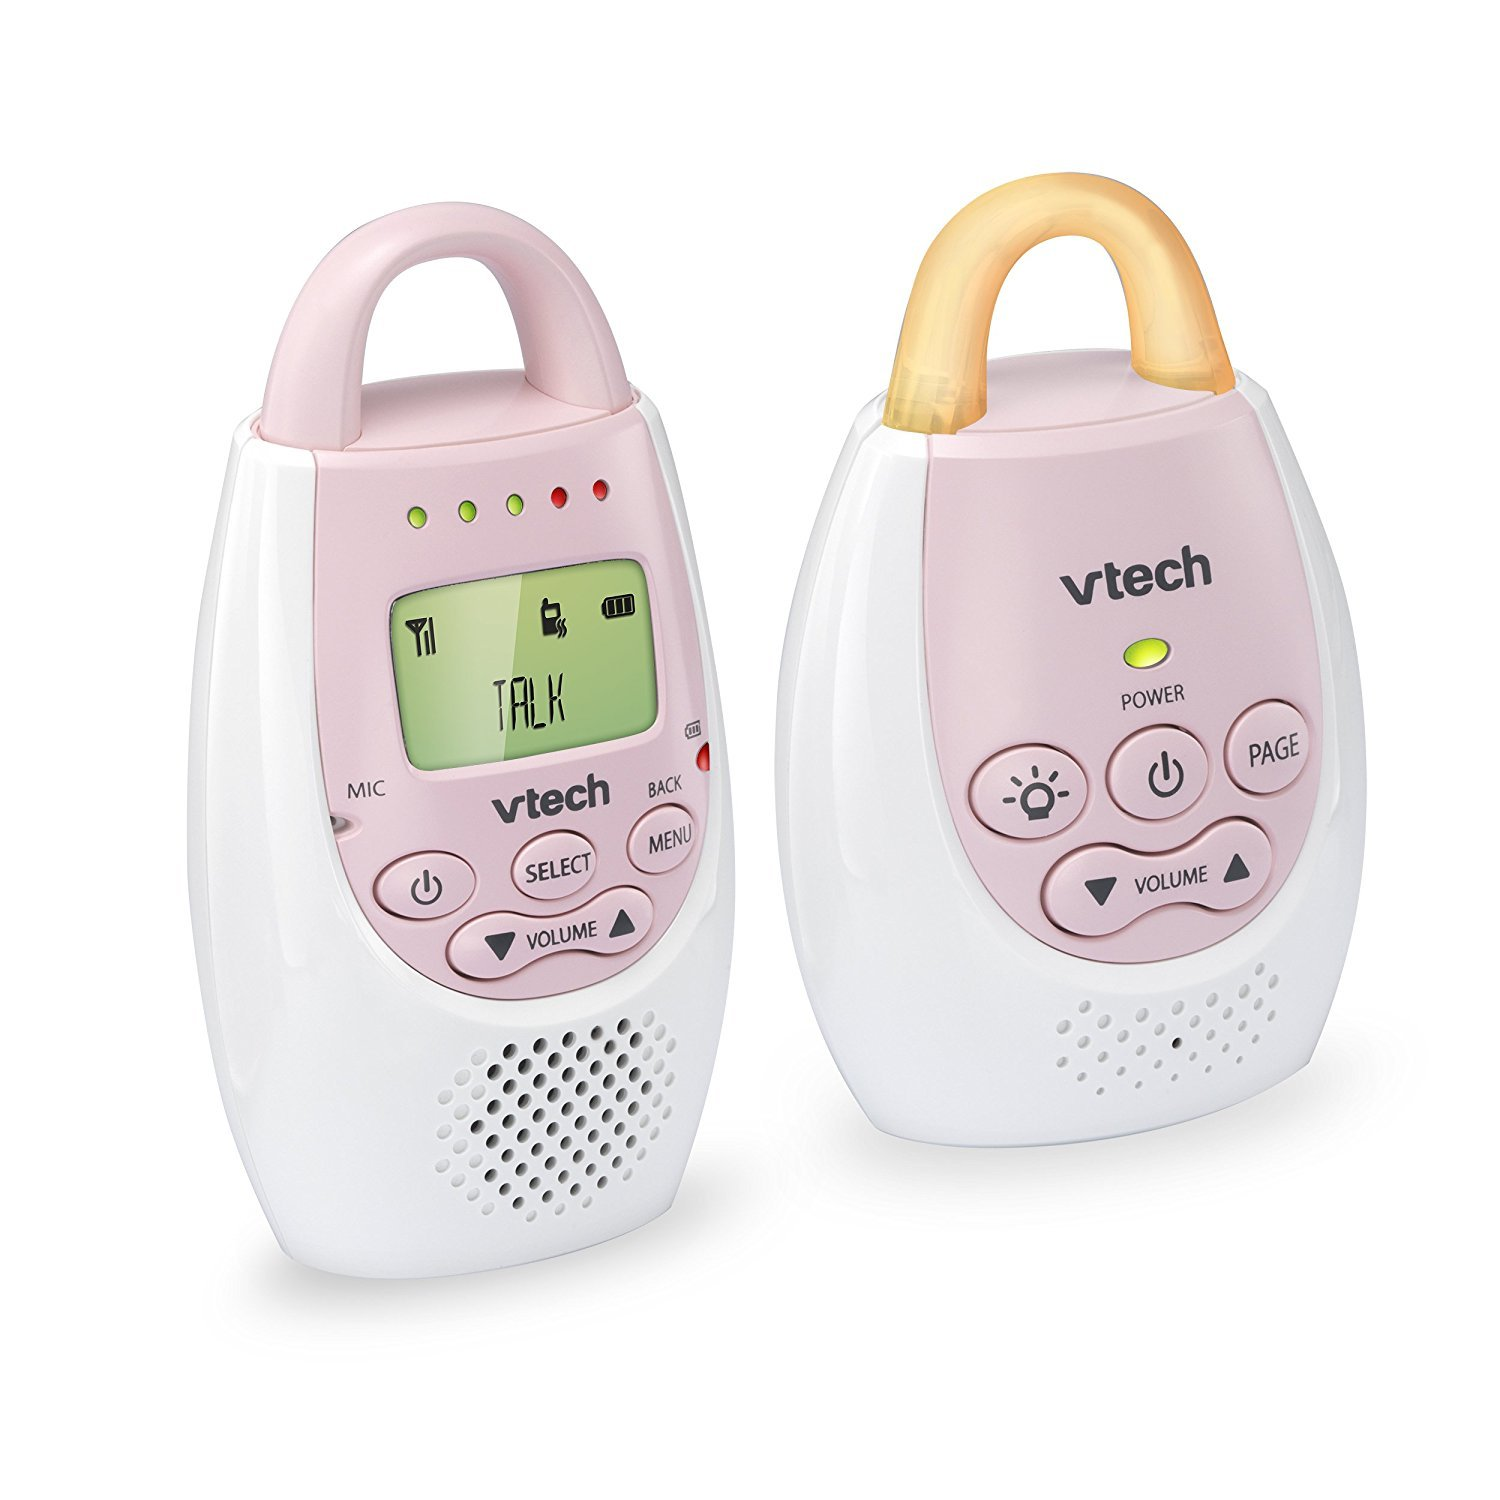 Top 5 Best (And Safest) Baby Monitors Reviews in 2020 1